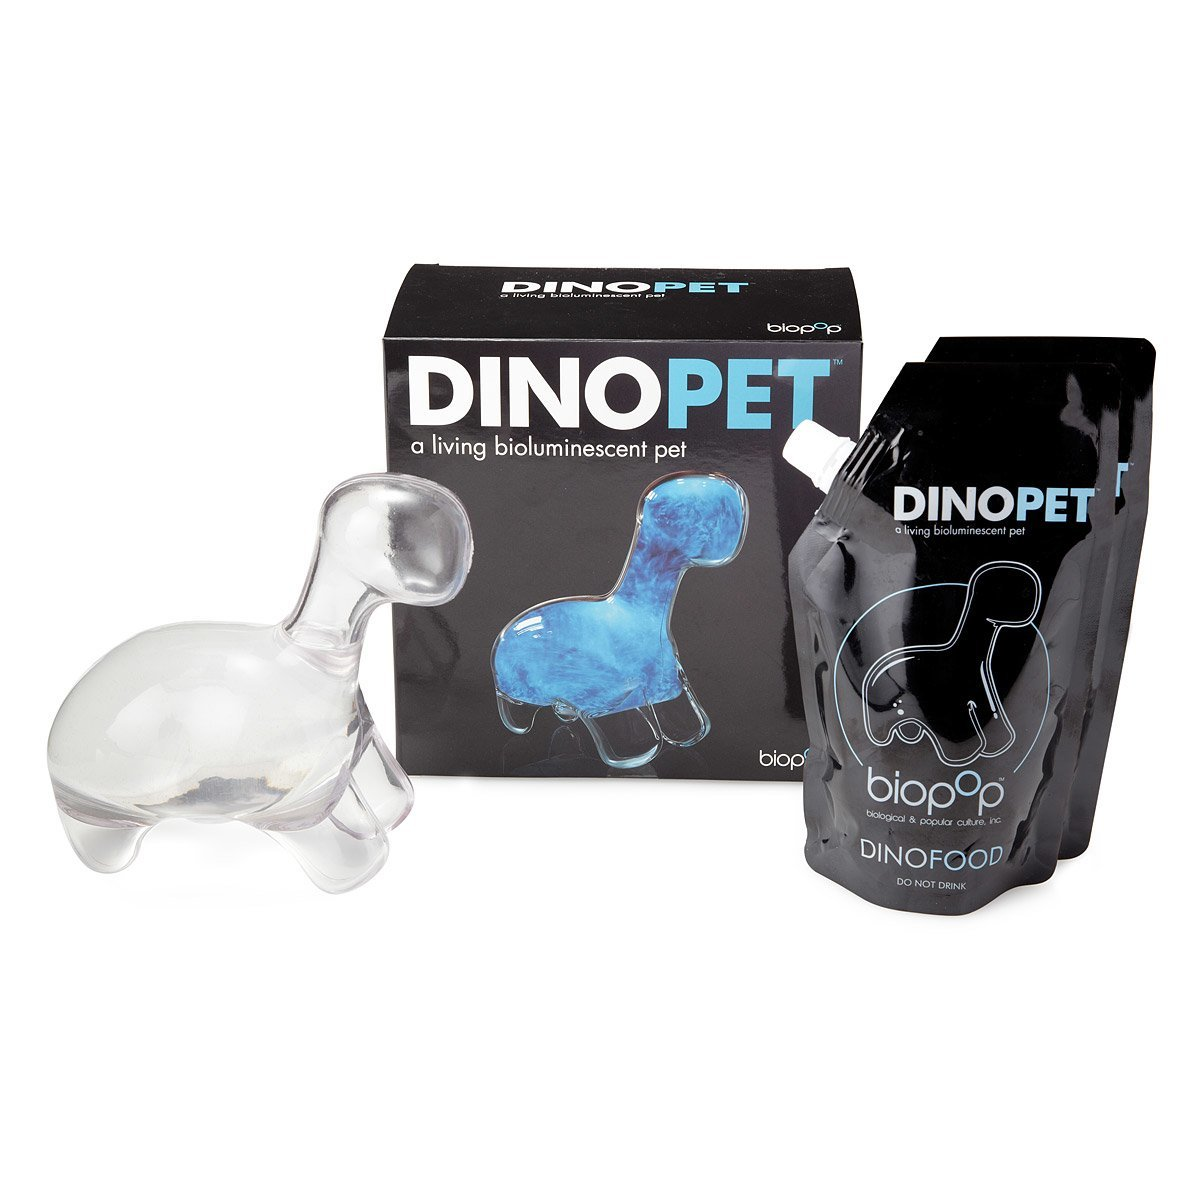 dino pet review 2015 hottest tech toys images